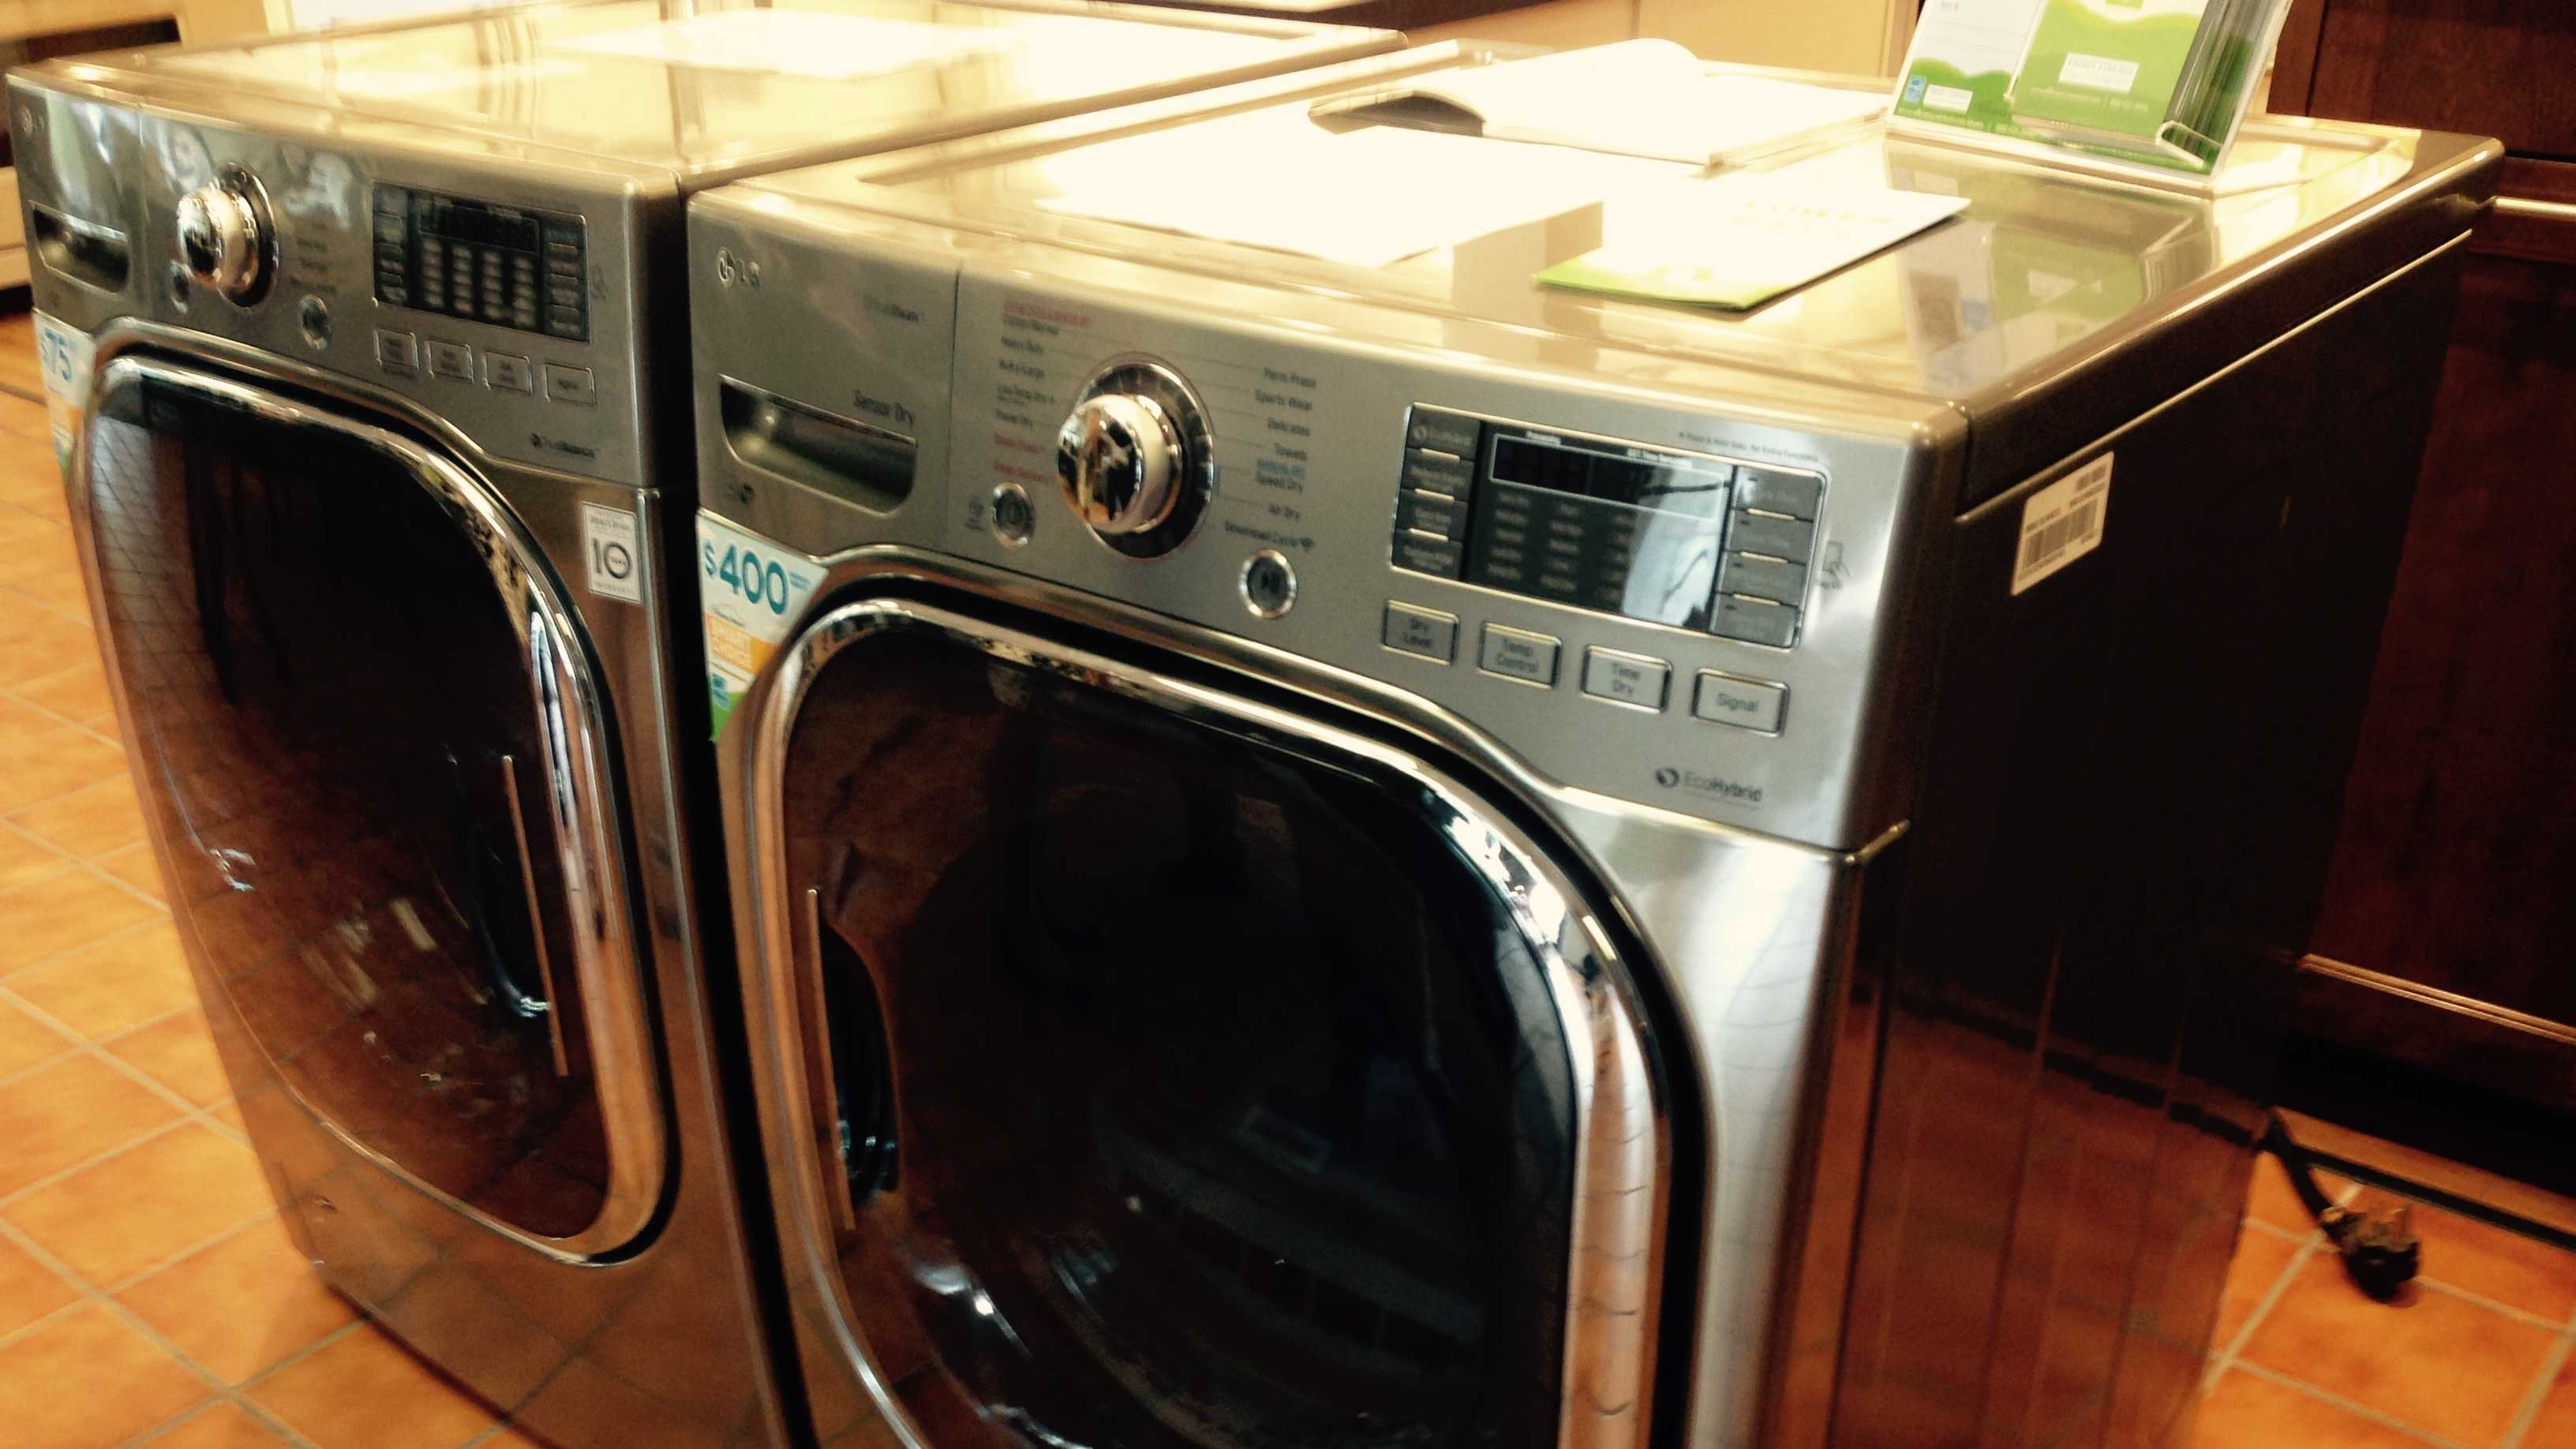 An electric heat pump clothes dryer for sale at Bouchard-Pierce Appliances in Essex Junction.